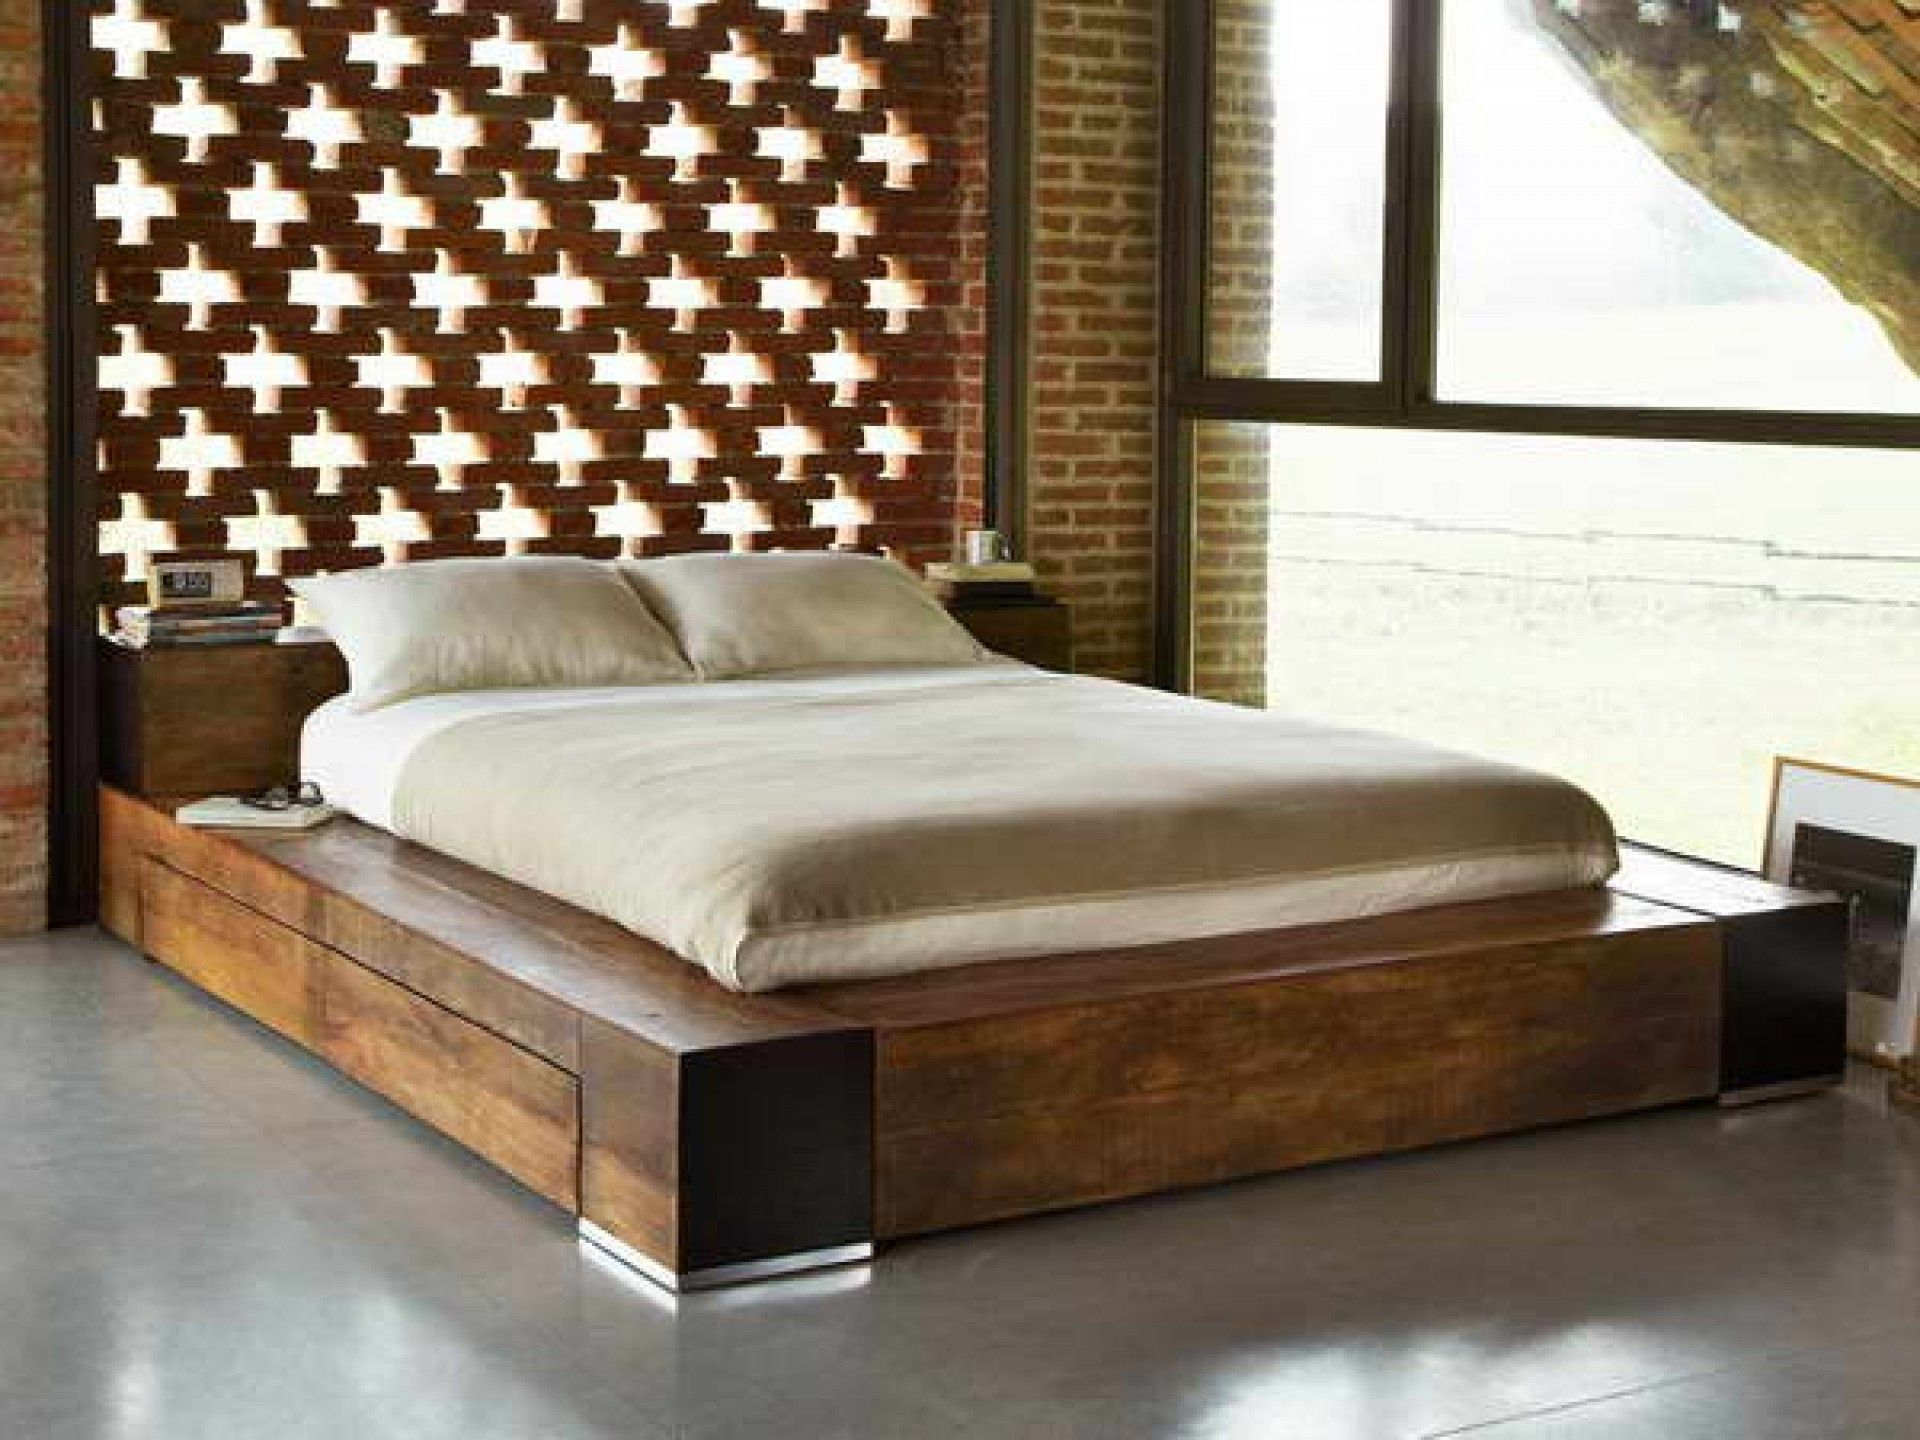 Brown Lacquer Teak Wood Bed Frame Having Double Storage Drawer Underneath On Gray Ceramic Tiled Floo Luxury Wooden Bed Bed Frame With Storage Wooden Bed Frames